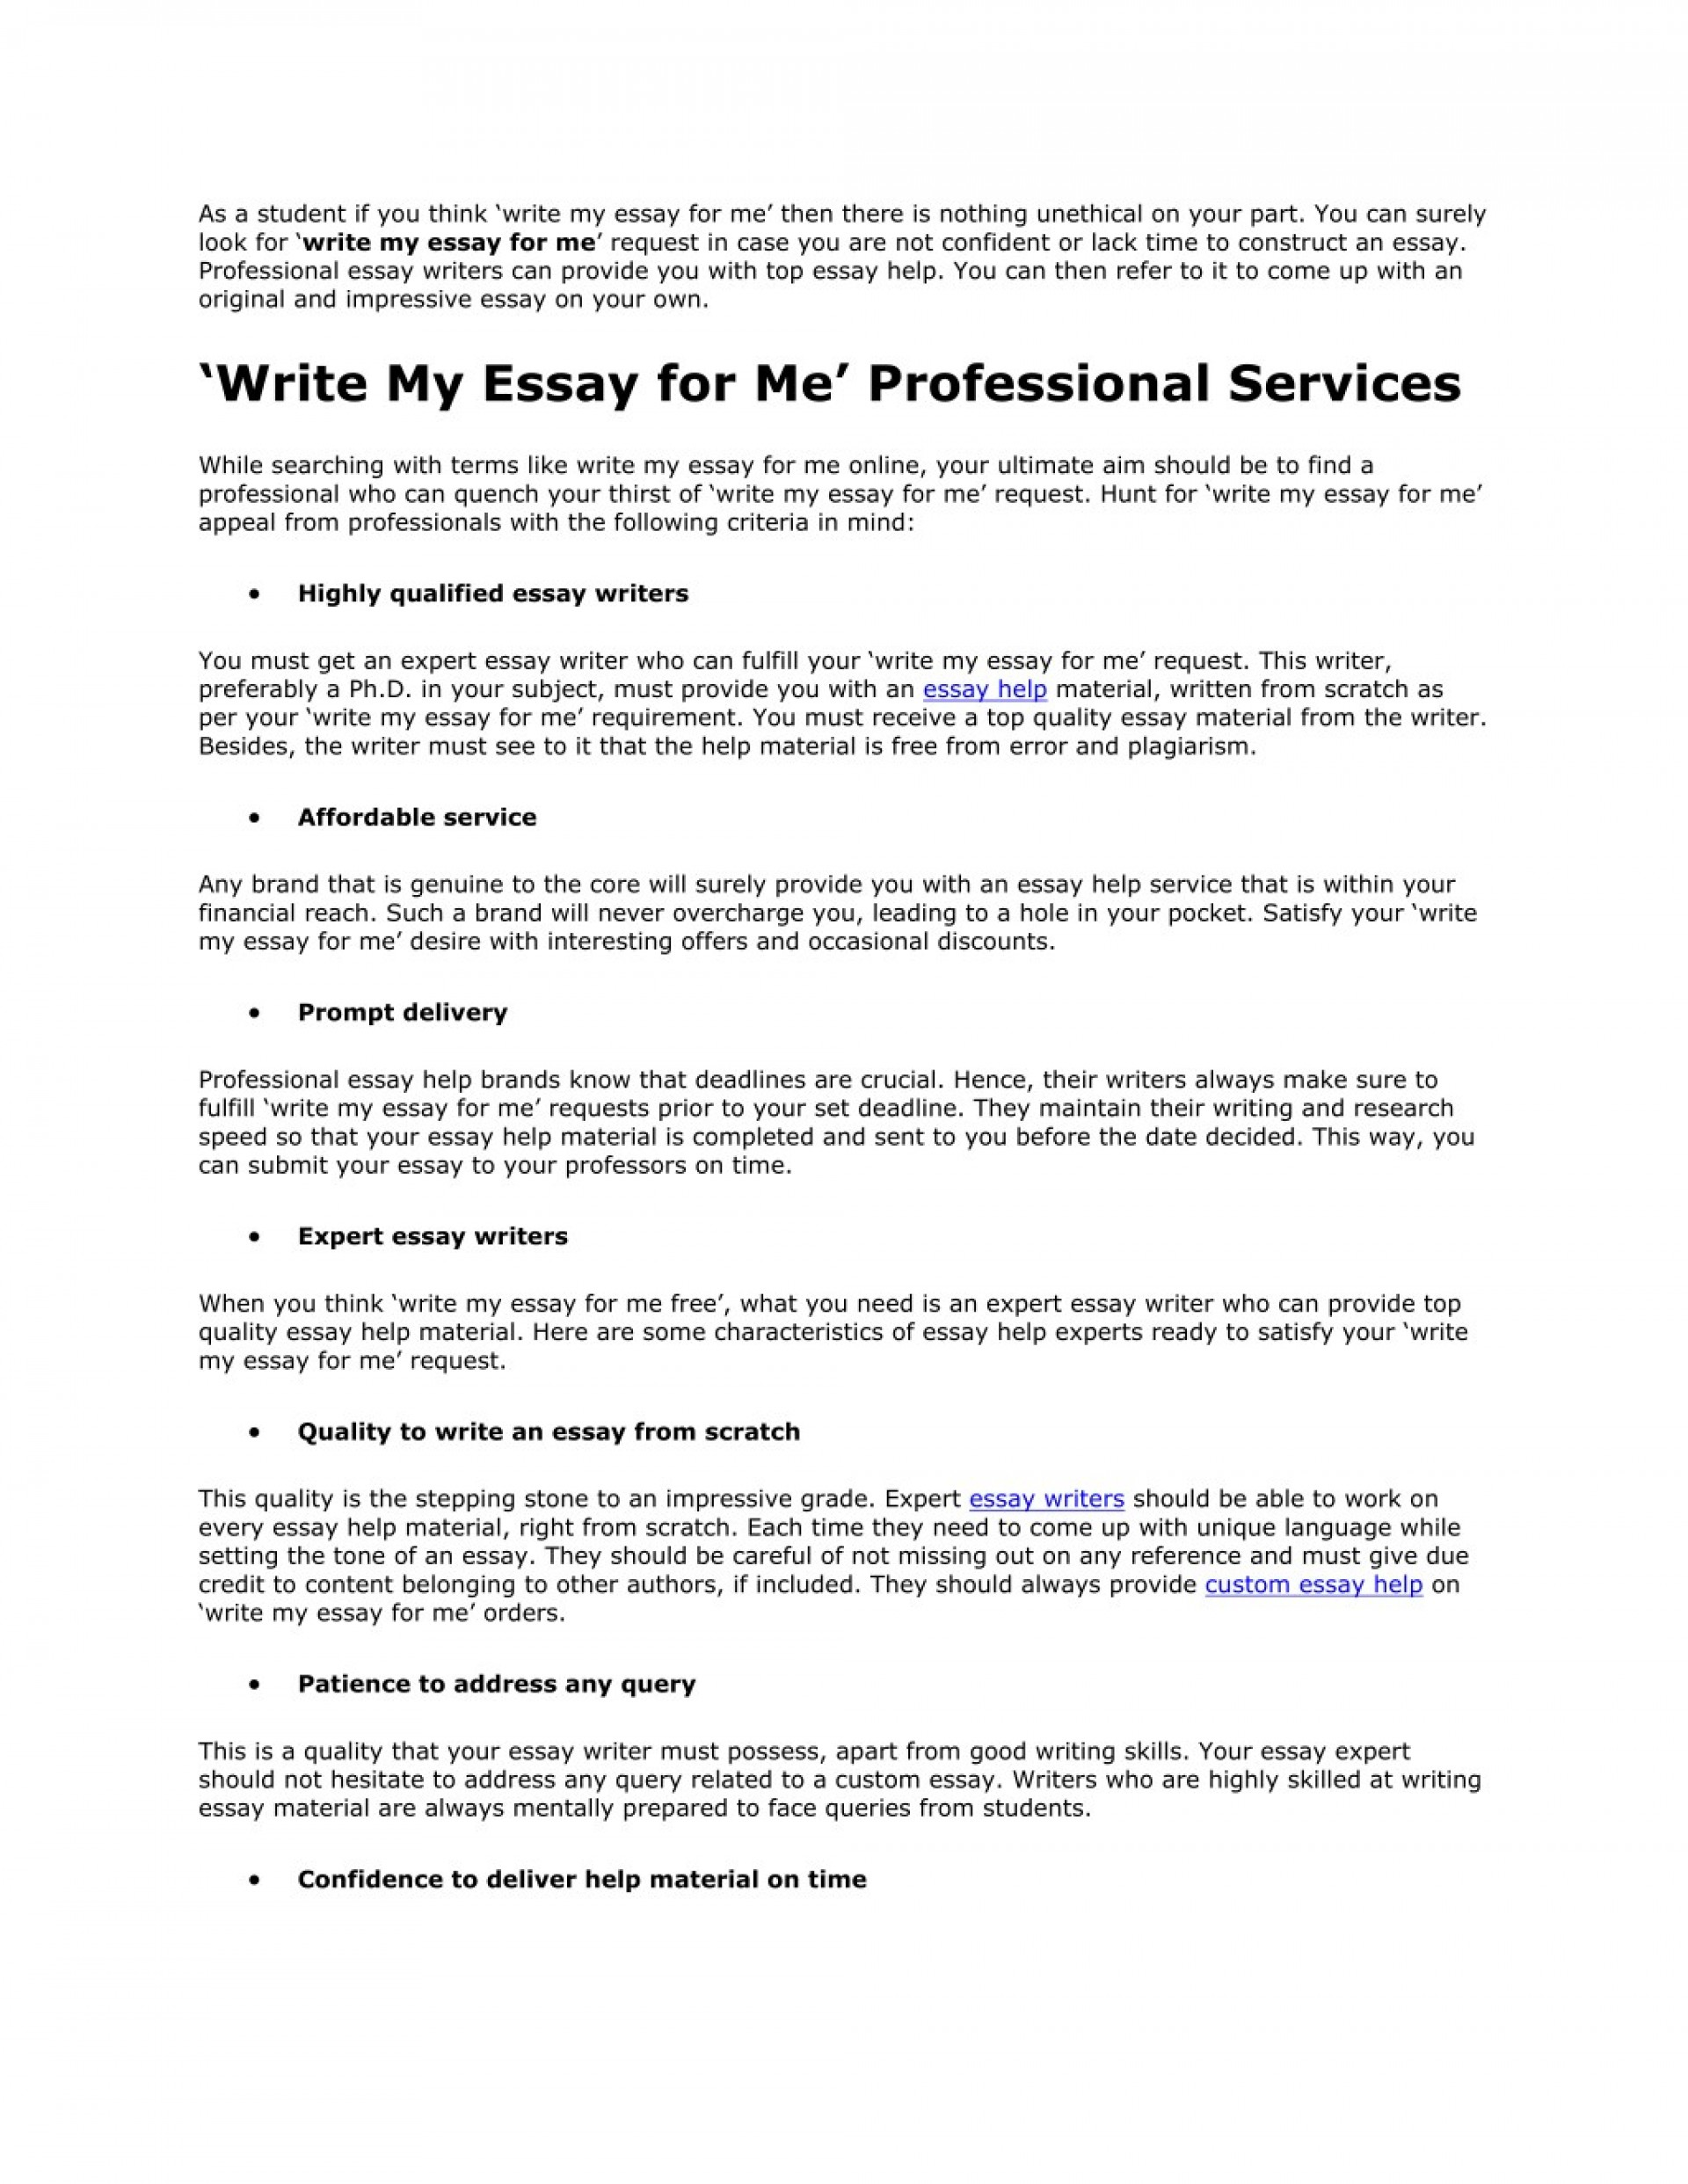 006 Essay Example Write For Me As Student If You Think My Amazing Generator Free Online 1920